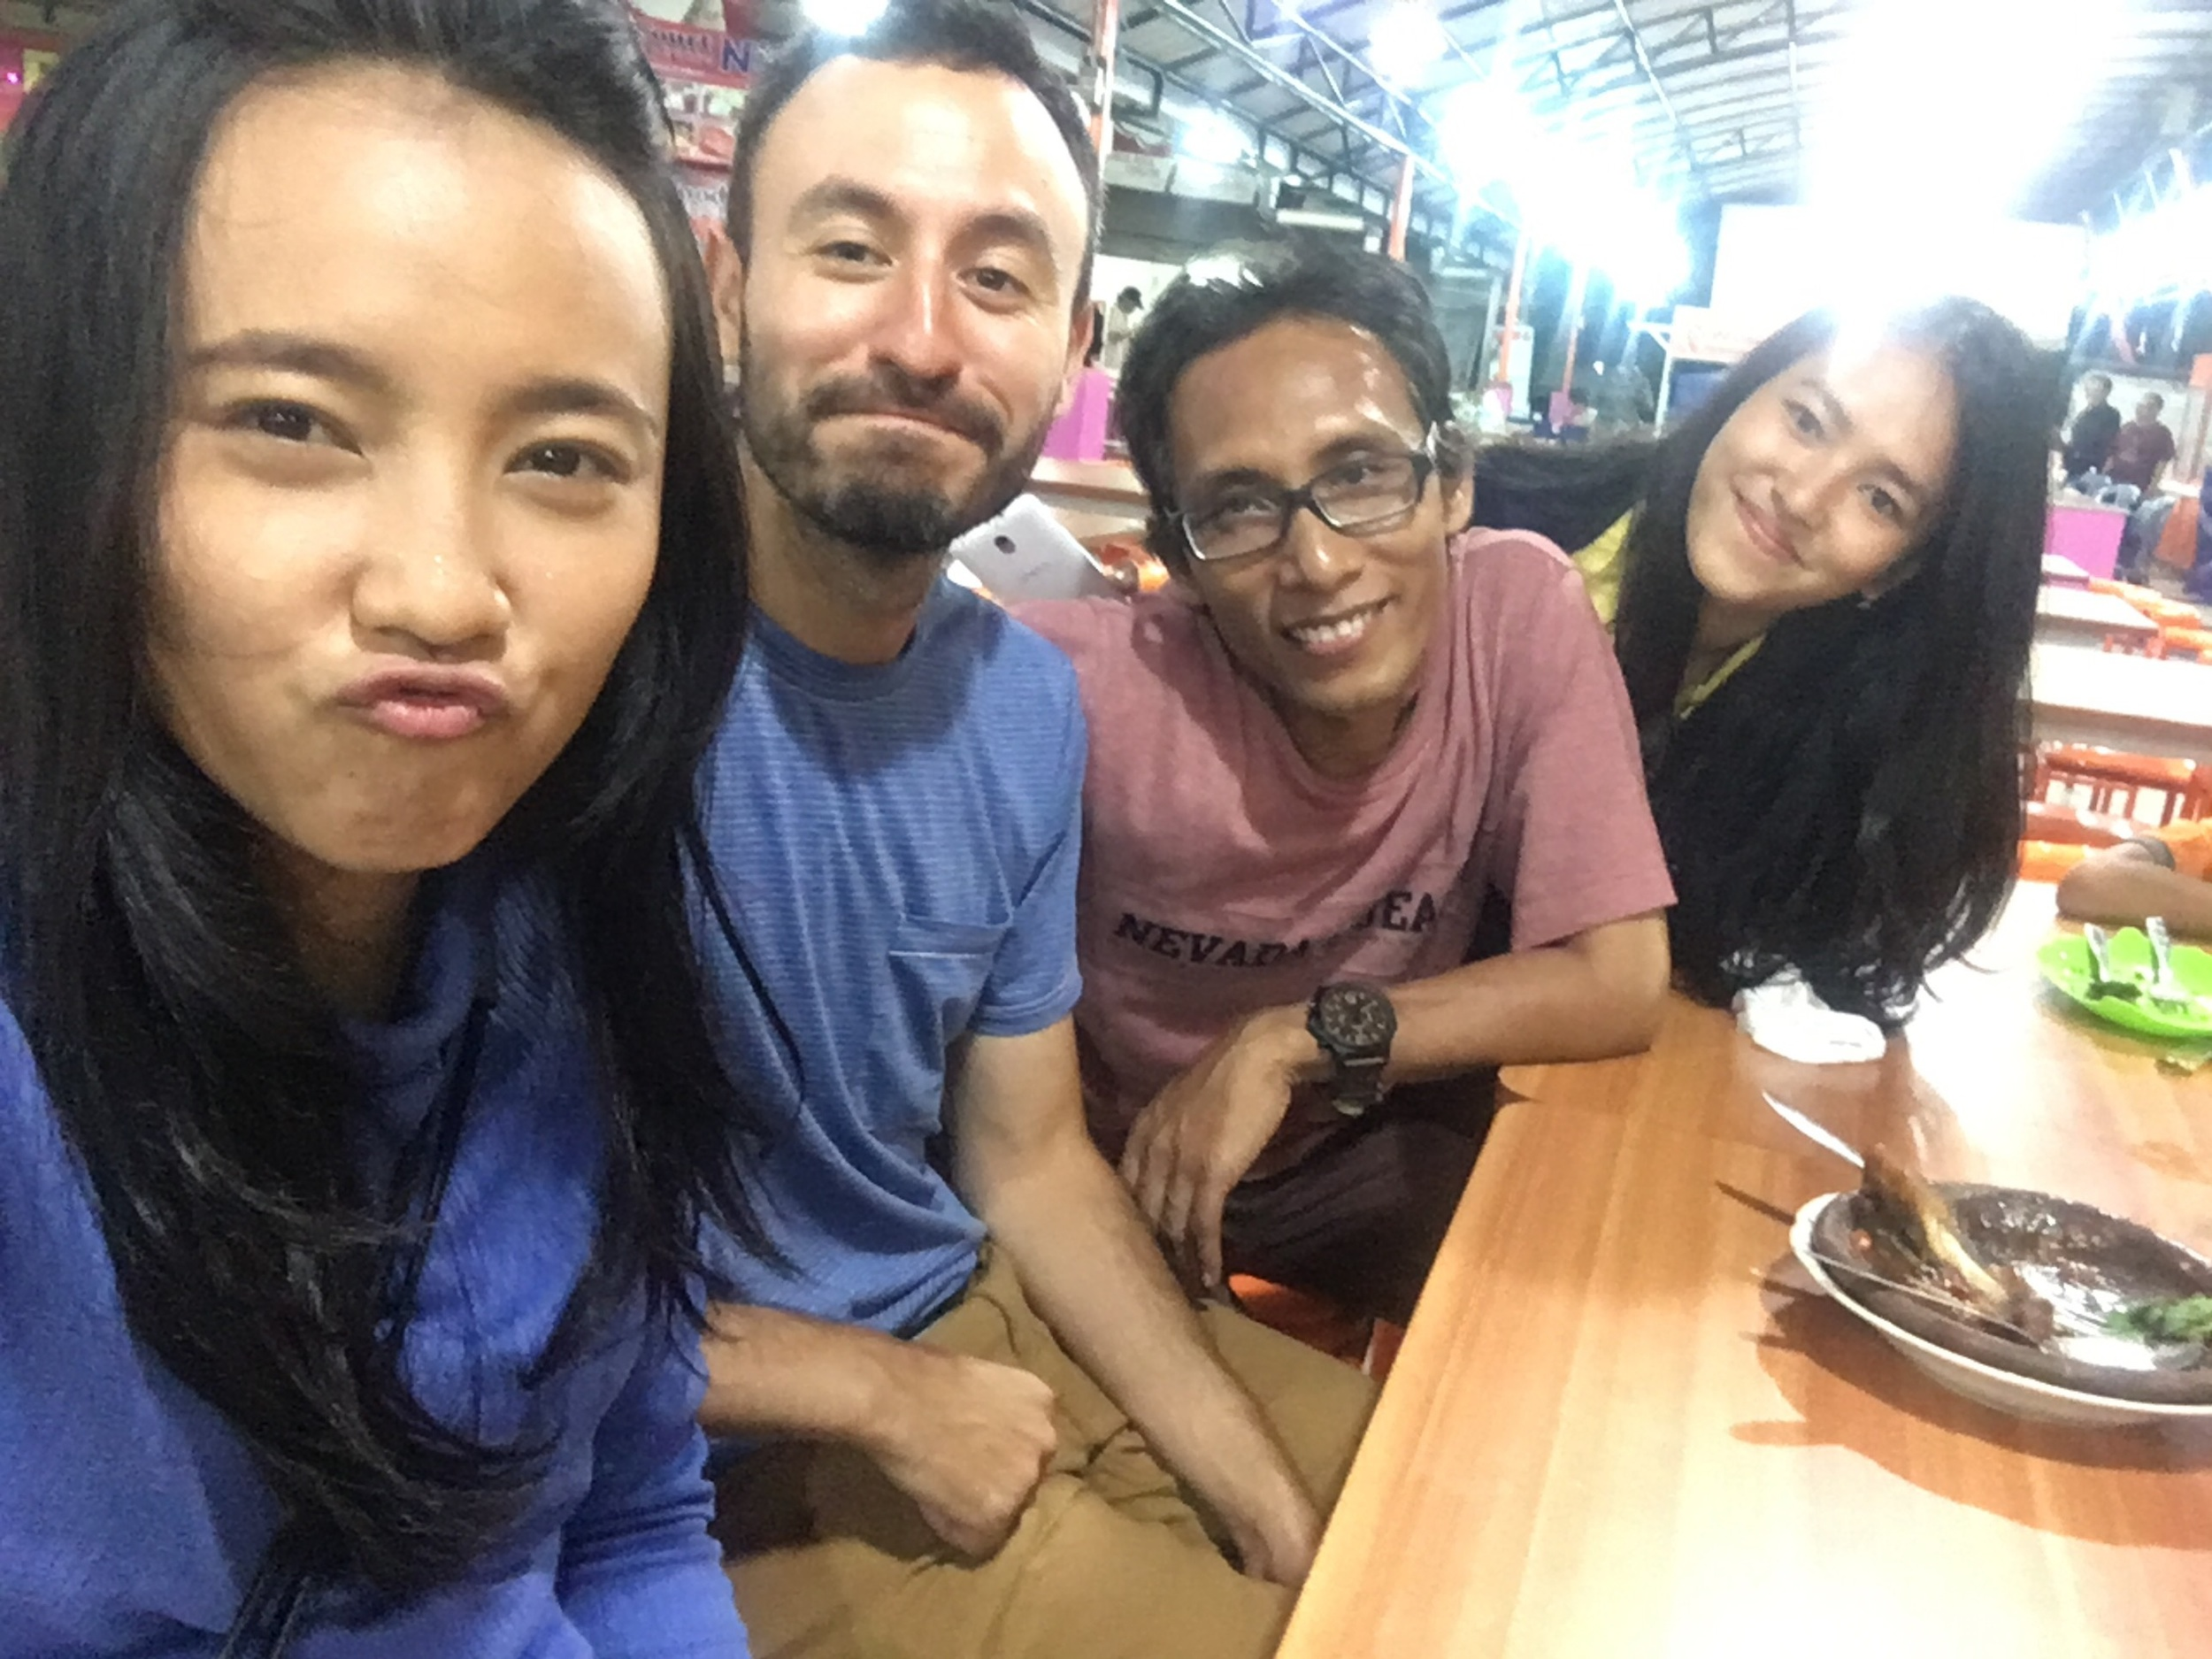 Meeting more friends before leaving Java and Indonesia